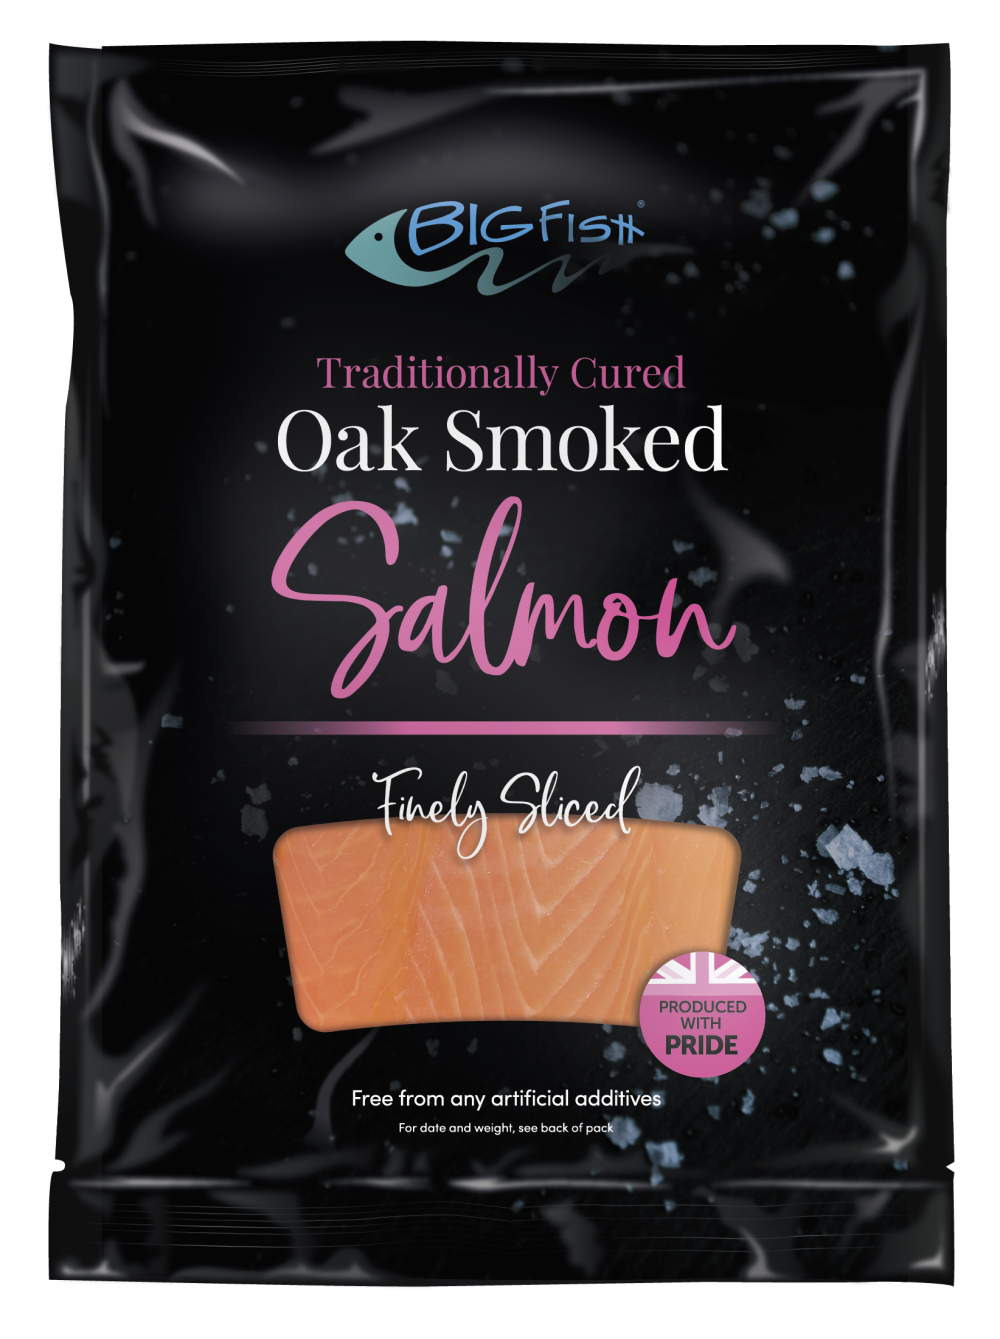 https://www.bigfishbrand.co.uk/assets/images/products/BigFish_Smoked_Salmon_on_White_-_website.png